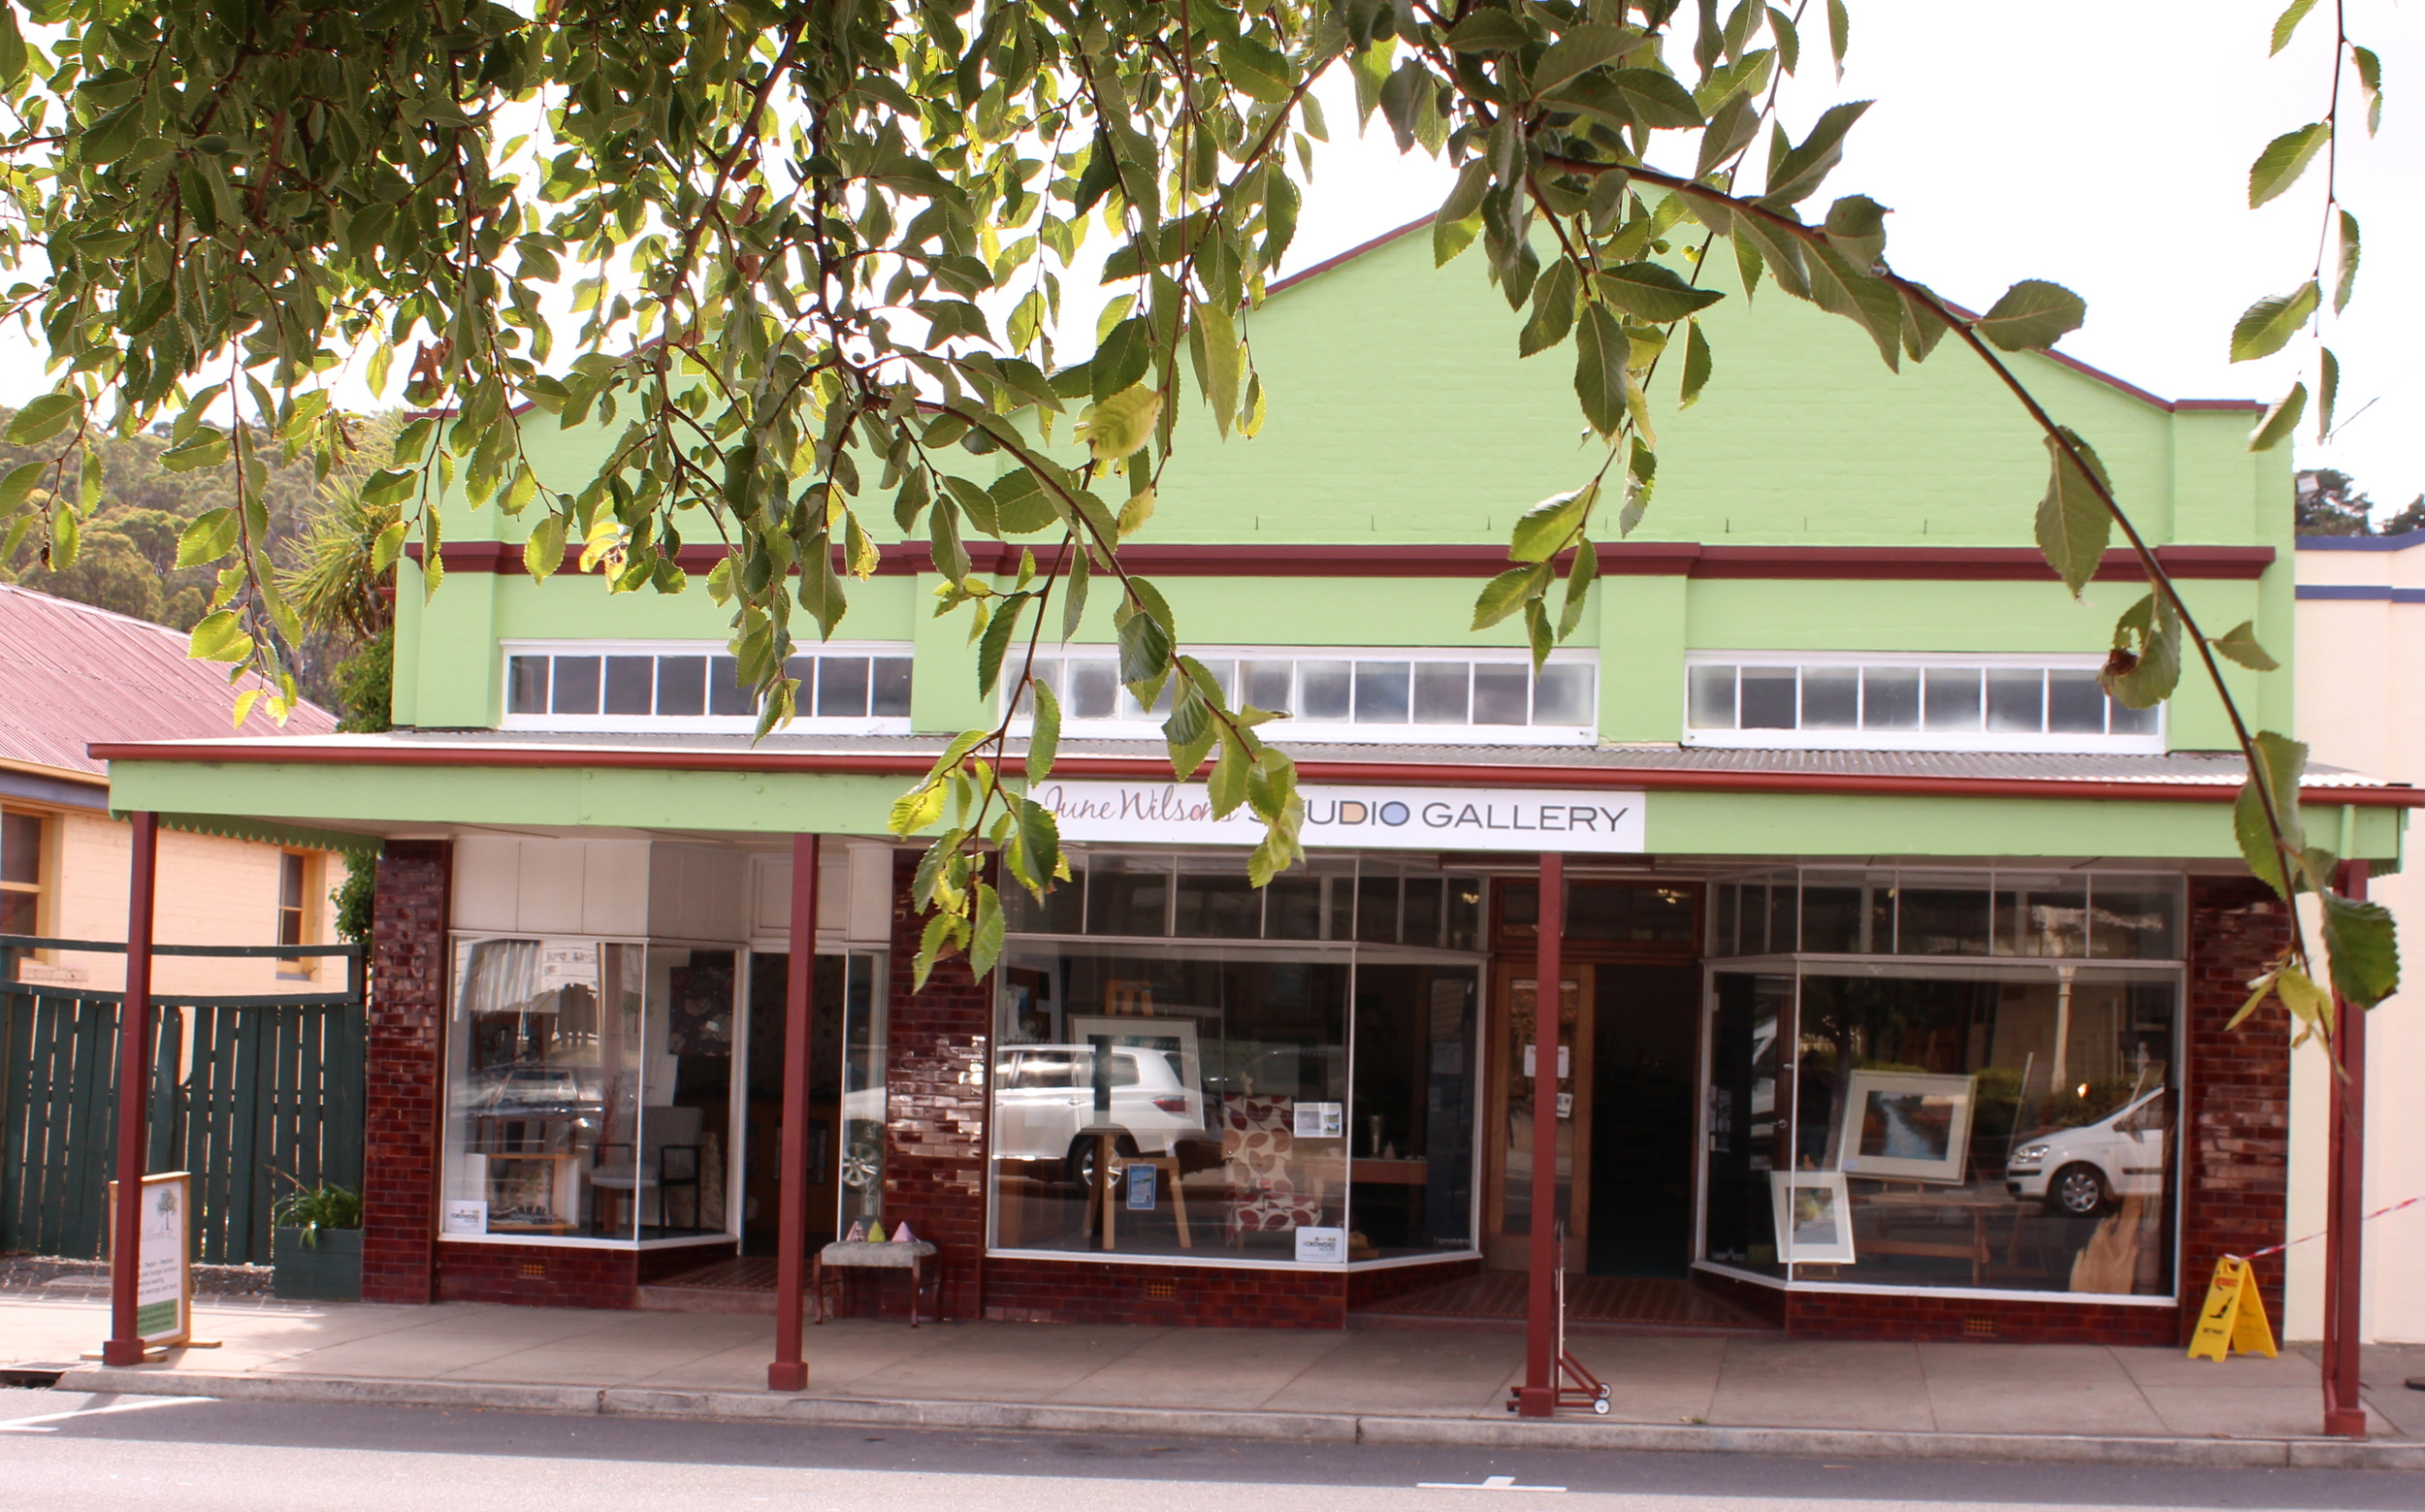 June's Studio Gallery is a part of the Crowded Lounge in Gilbert Street Latrobe.